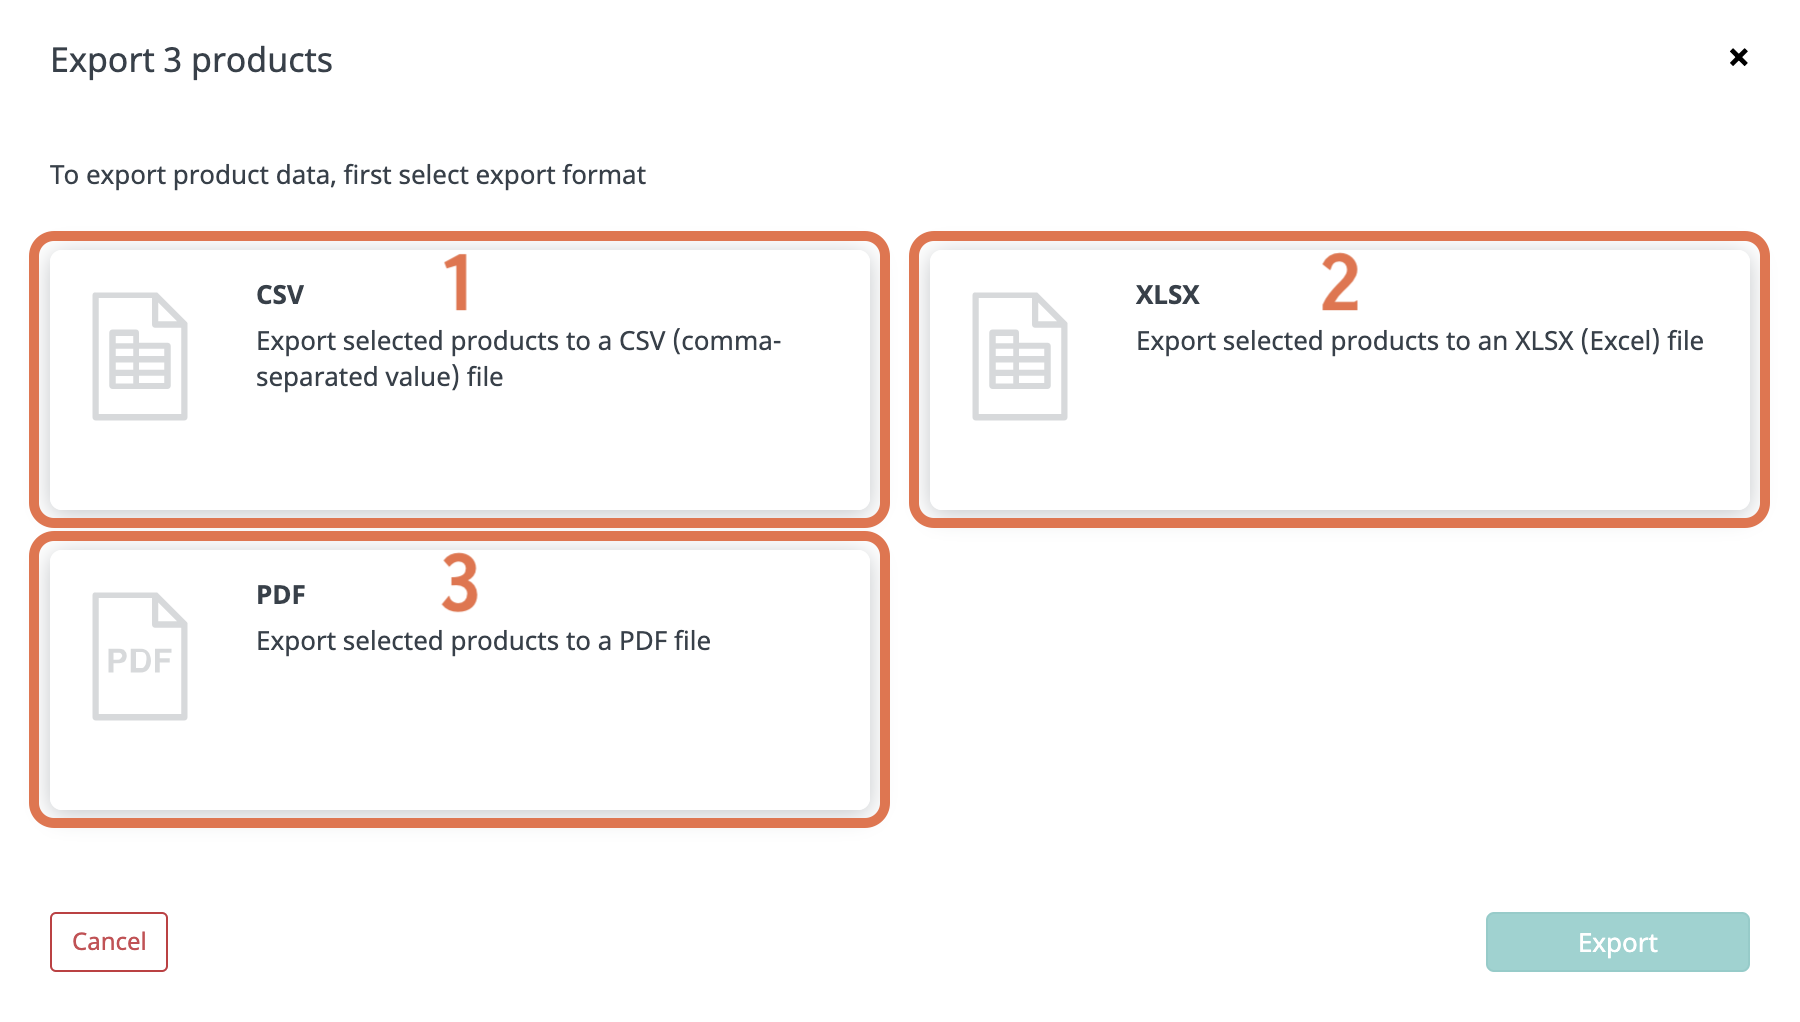 Export product data - select format